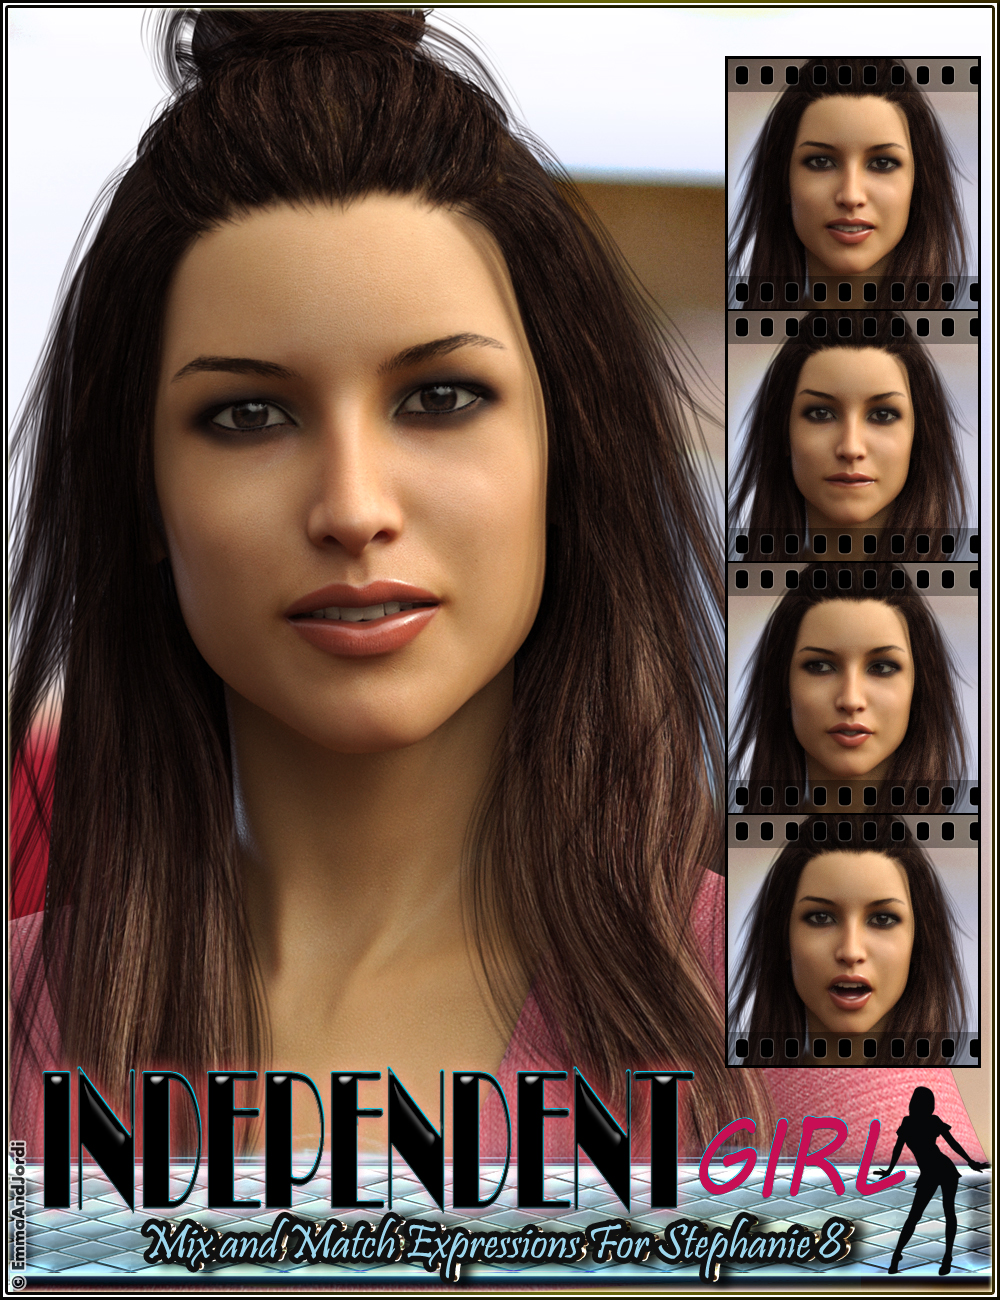 Independent Girl Mix and Match Expressions for Stephanie 8 and Genesis 8 Female(s) by: EmmaAndJordi, 3D Models by Daz 3D